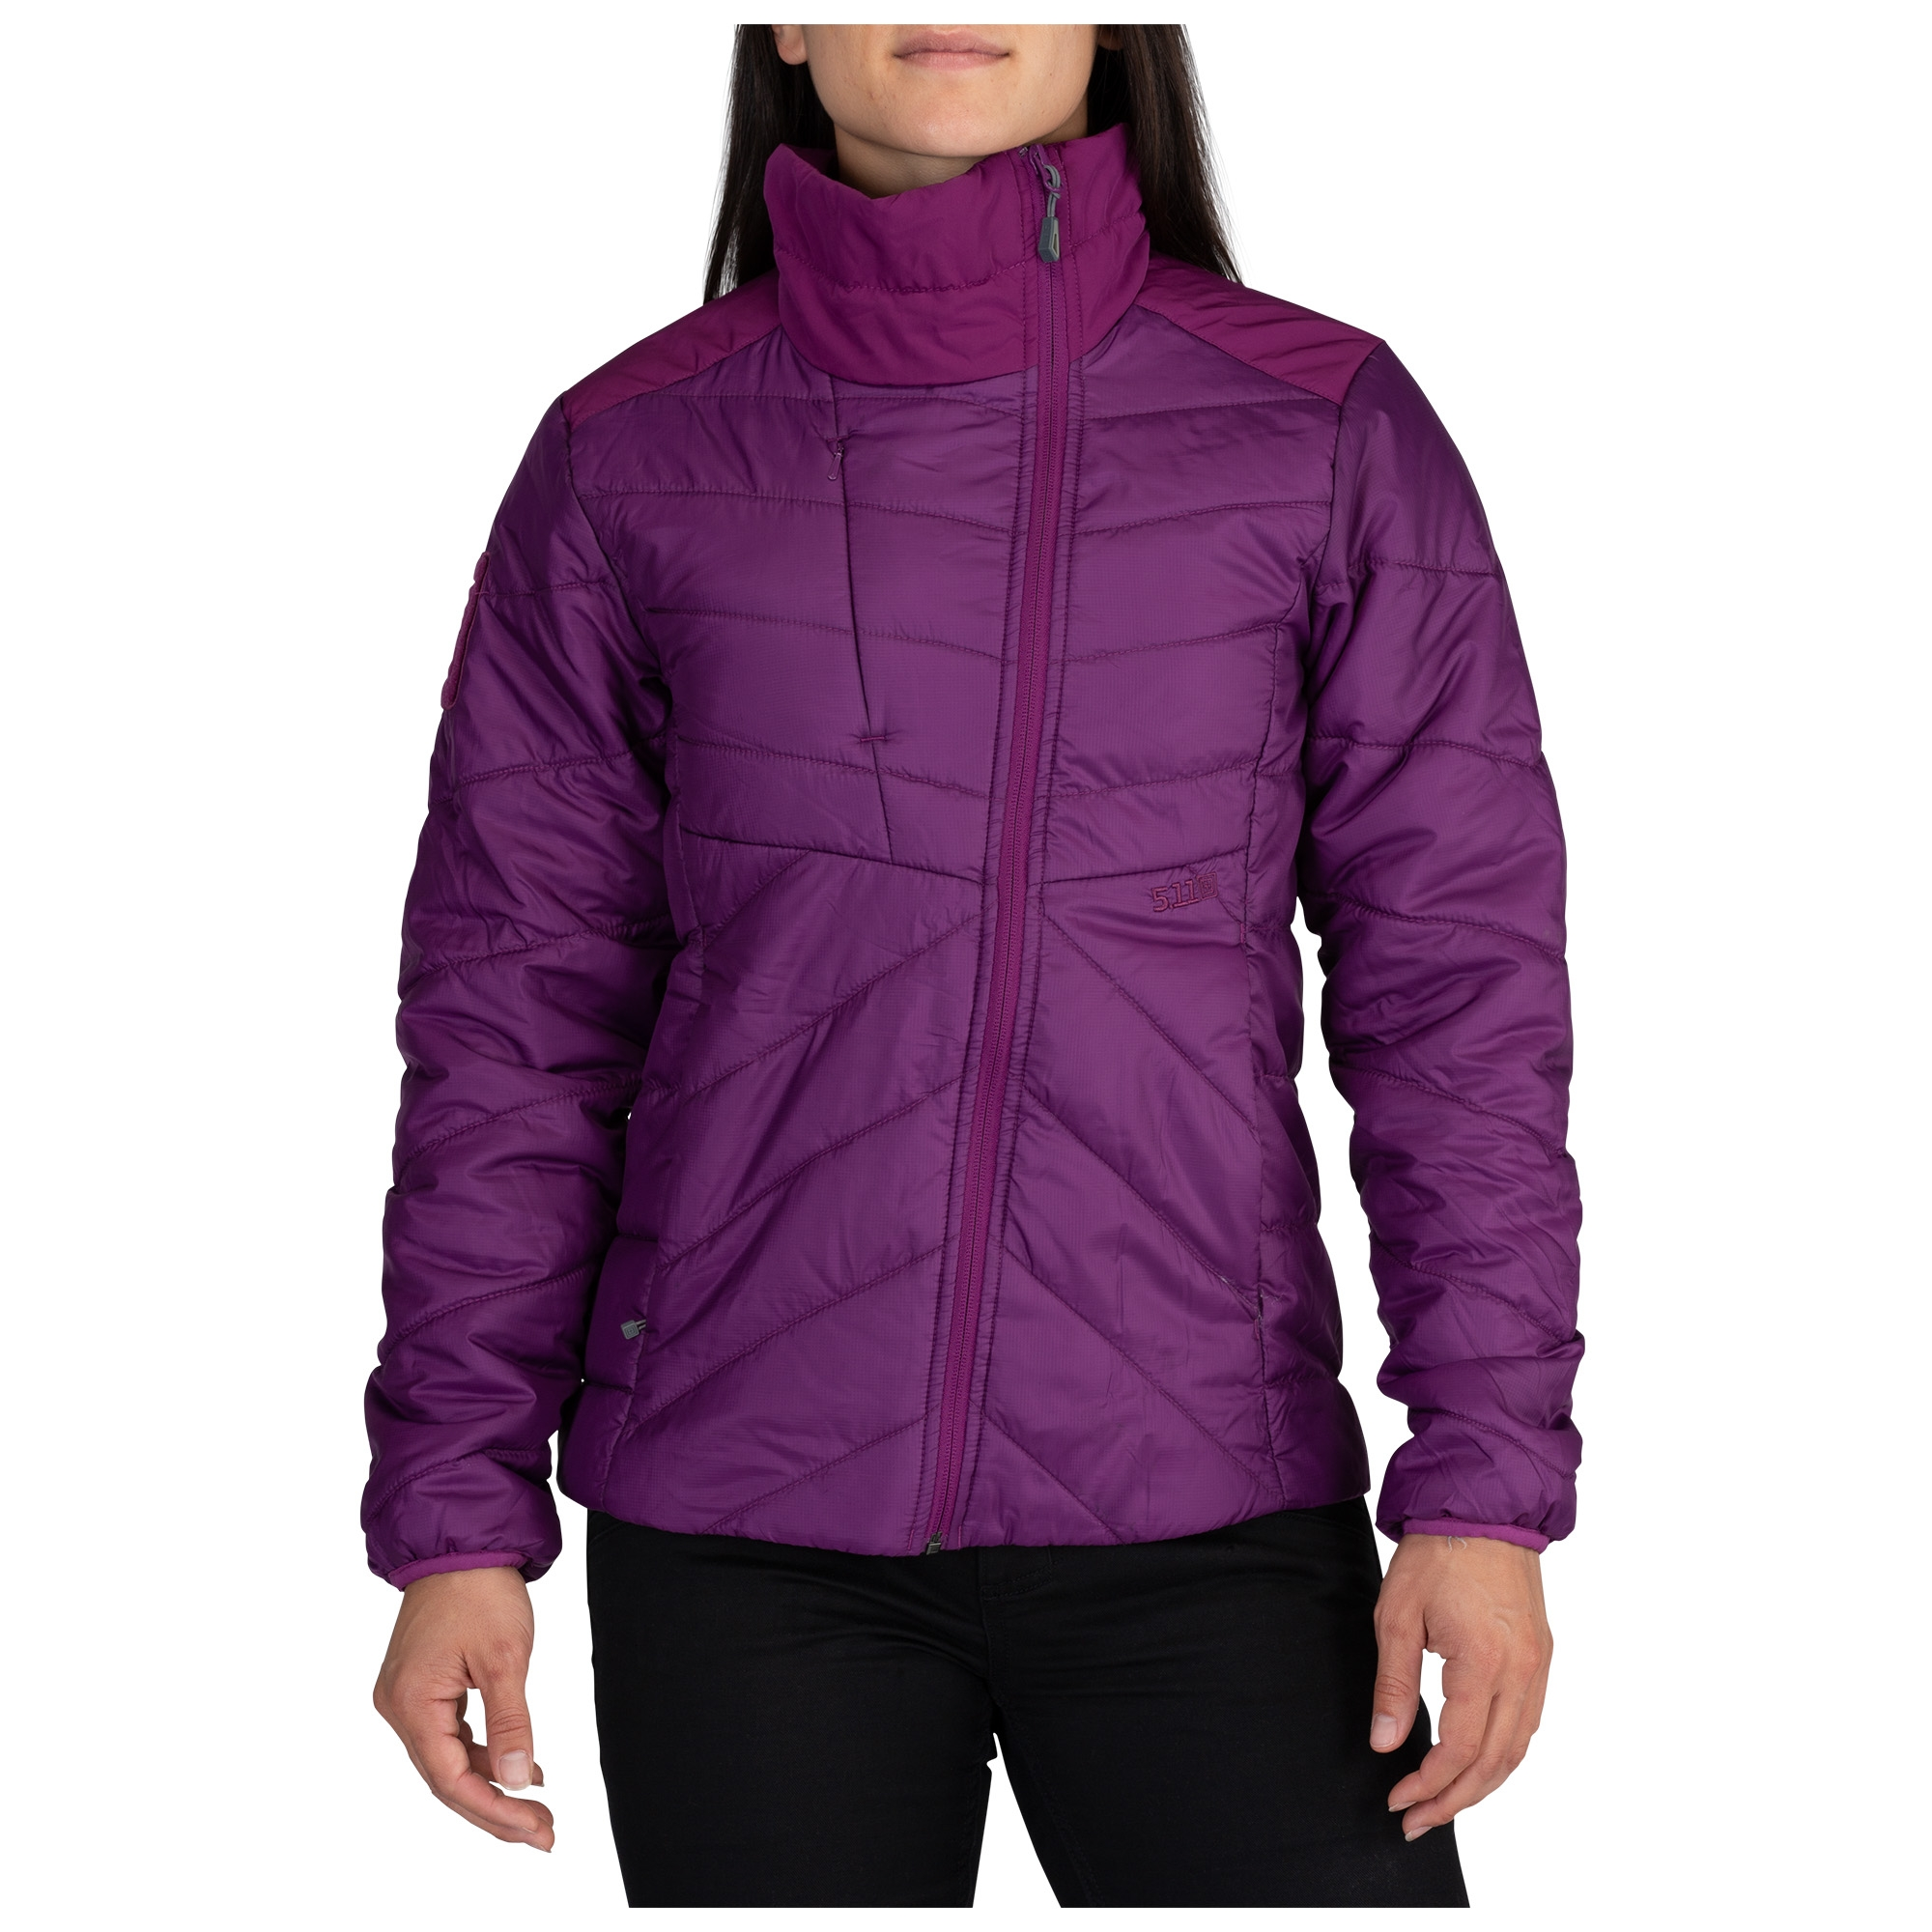 5.11 Tactical Women's Womens Peninsula Insulator Packable Jacket (Purple)